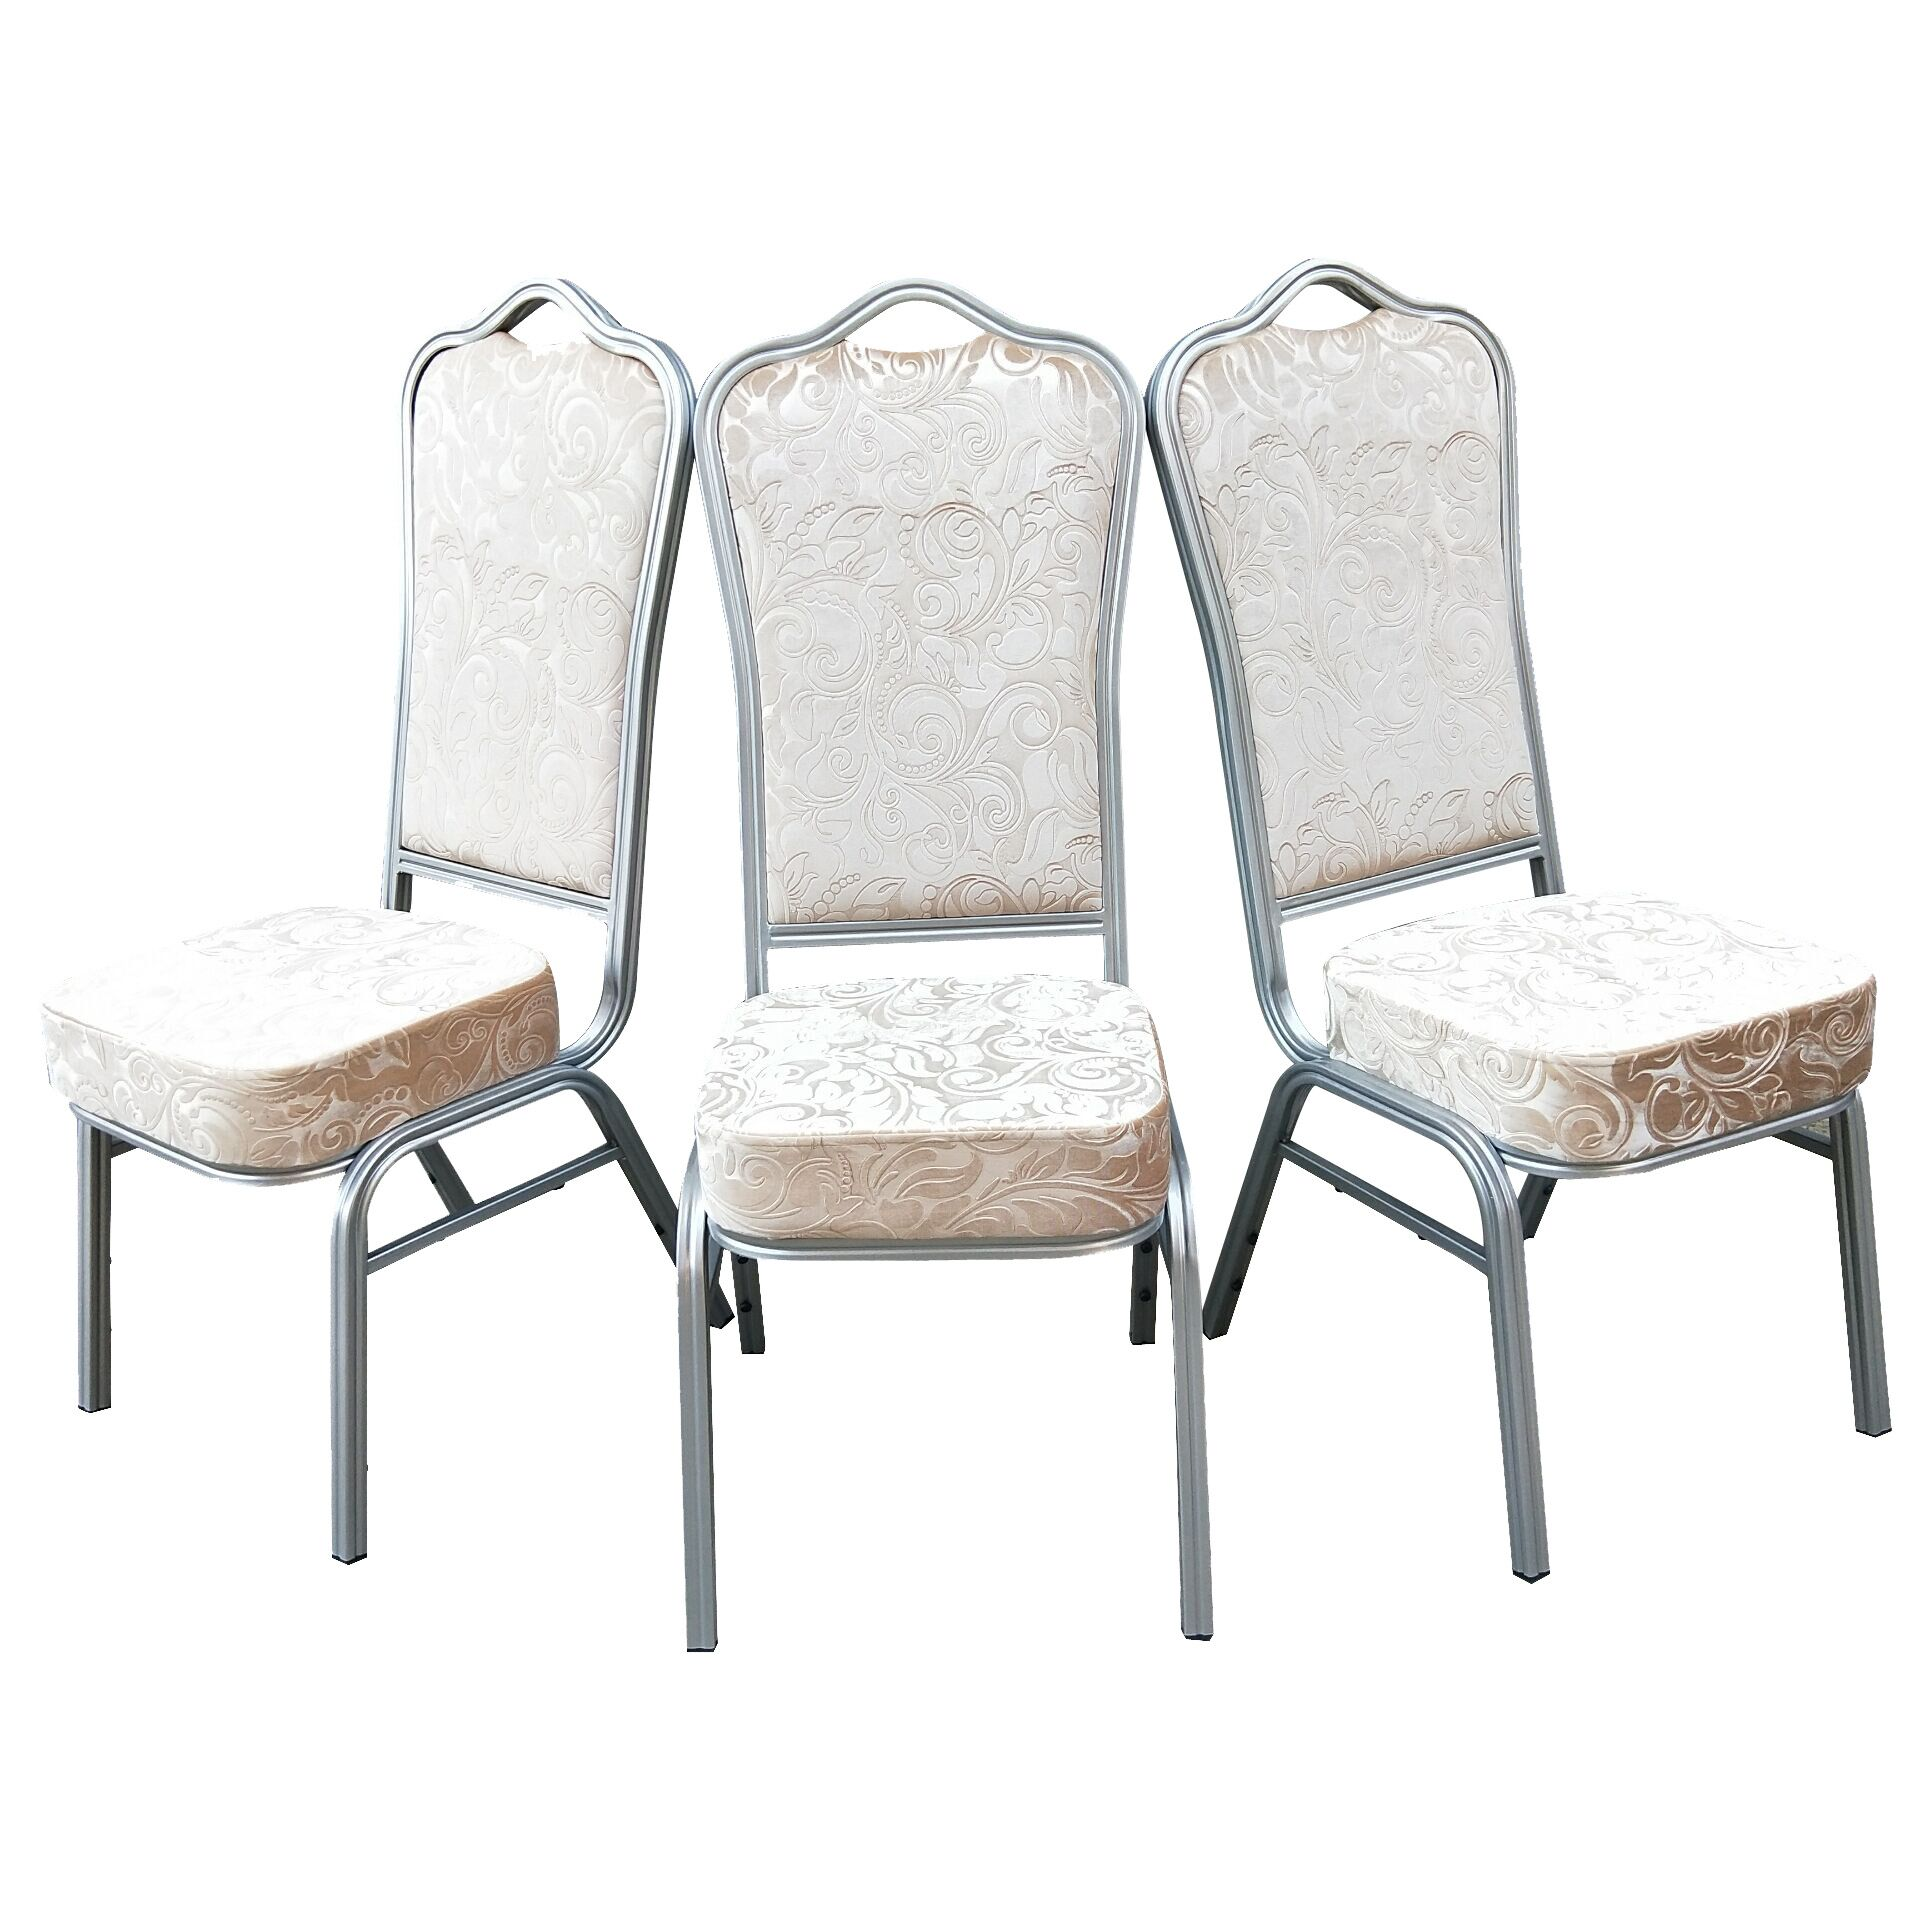 Reasonable price Church Chairs For Less -